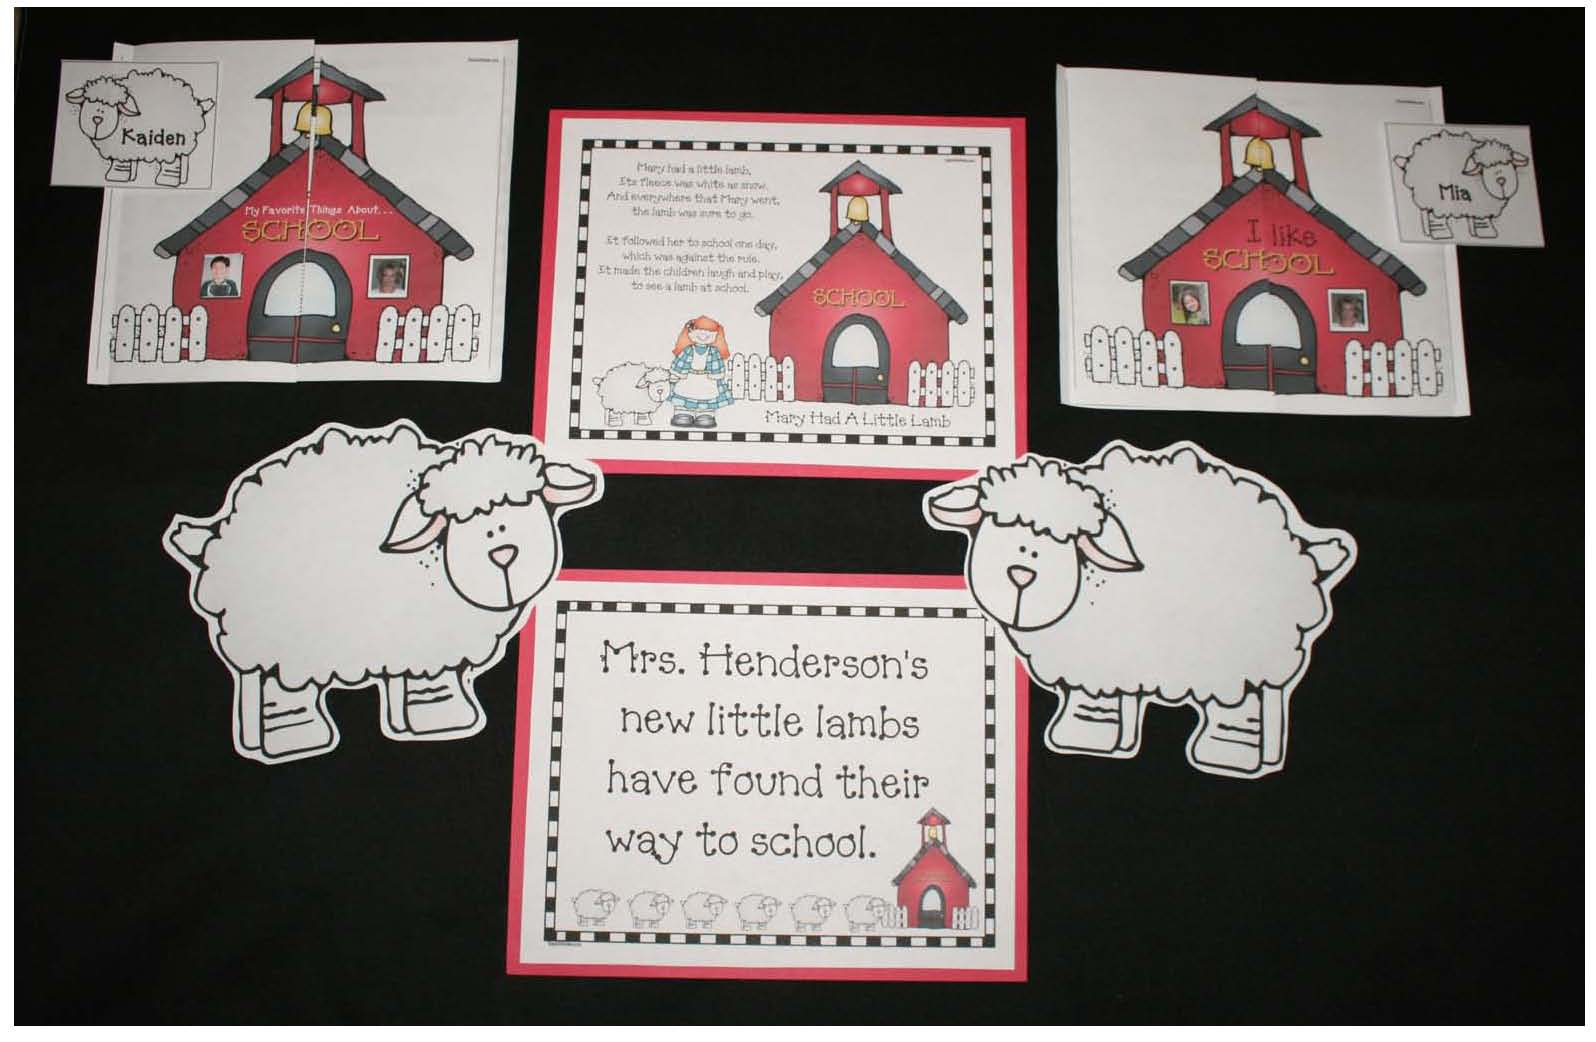 back to school activities, back to school crafts, back to school bulletin boards, back to school writing prompts, nursery rhyme crafts, nursery rhyme activities, mary had a little lamb background, mary had a little lamb poster, mary had a little lamb crafts, nursery rhyme bulletin boards, activities for Mary had a little lamb